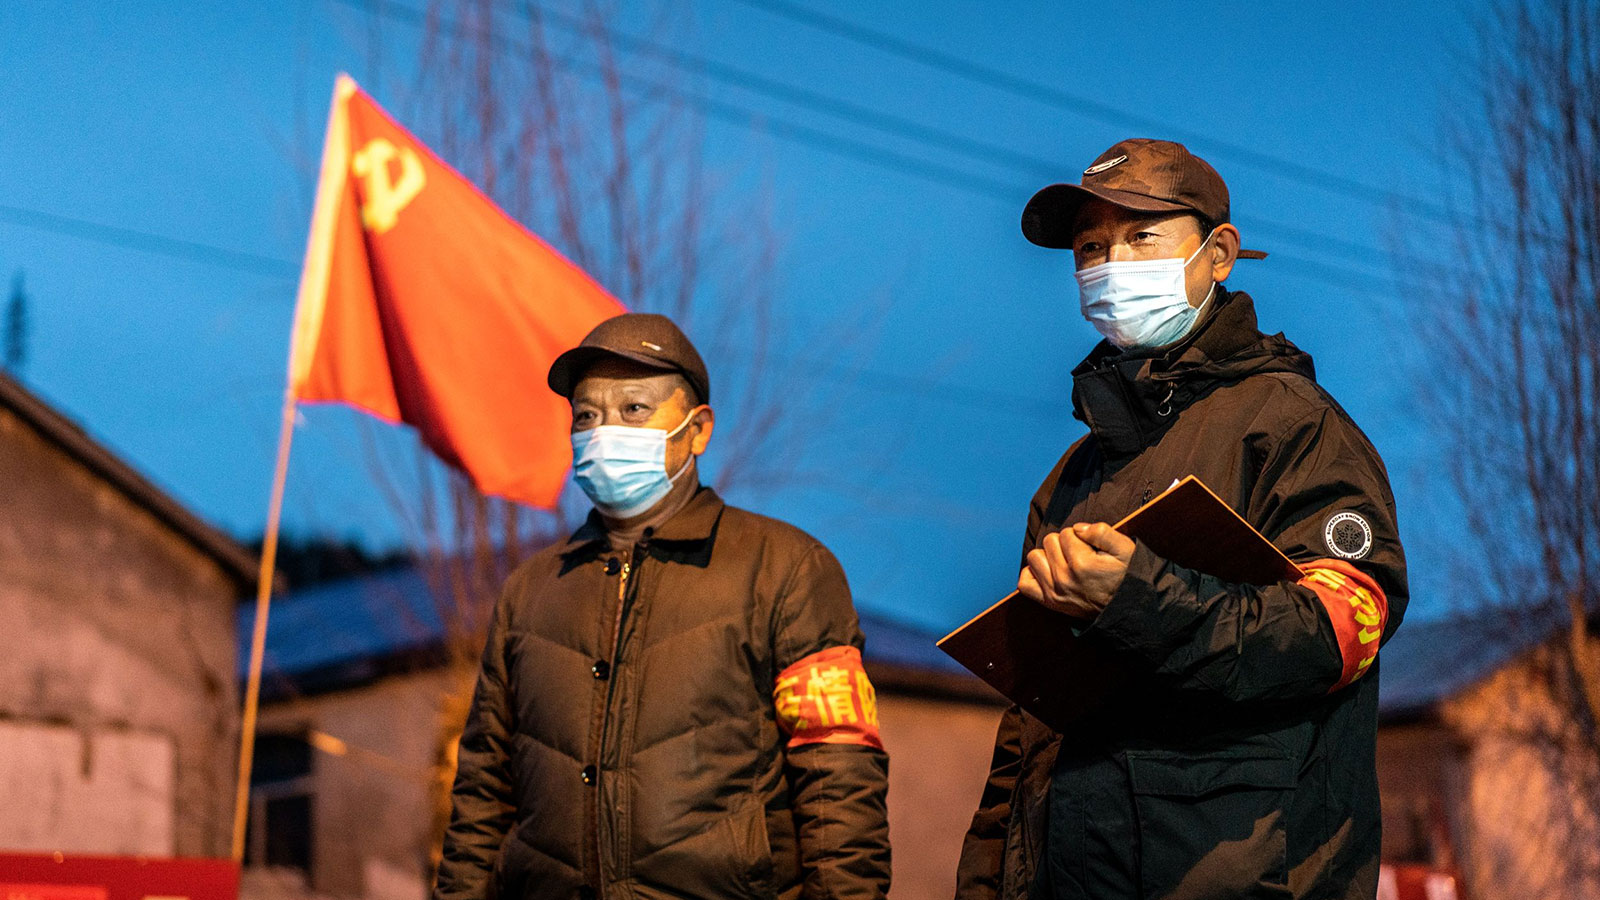 This photo taken on April 21, 2020 shows officials keeping watch at a checkpoint in the border city of Suifenhe, in China's northeastern Heilongjiang province. A cluster of coronavirus cases in the provincial capital Harbin has forced officials to tighten restrictions on movement.